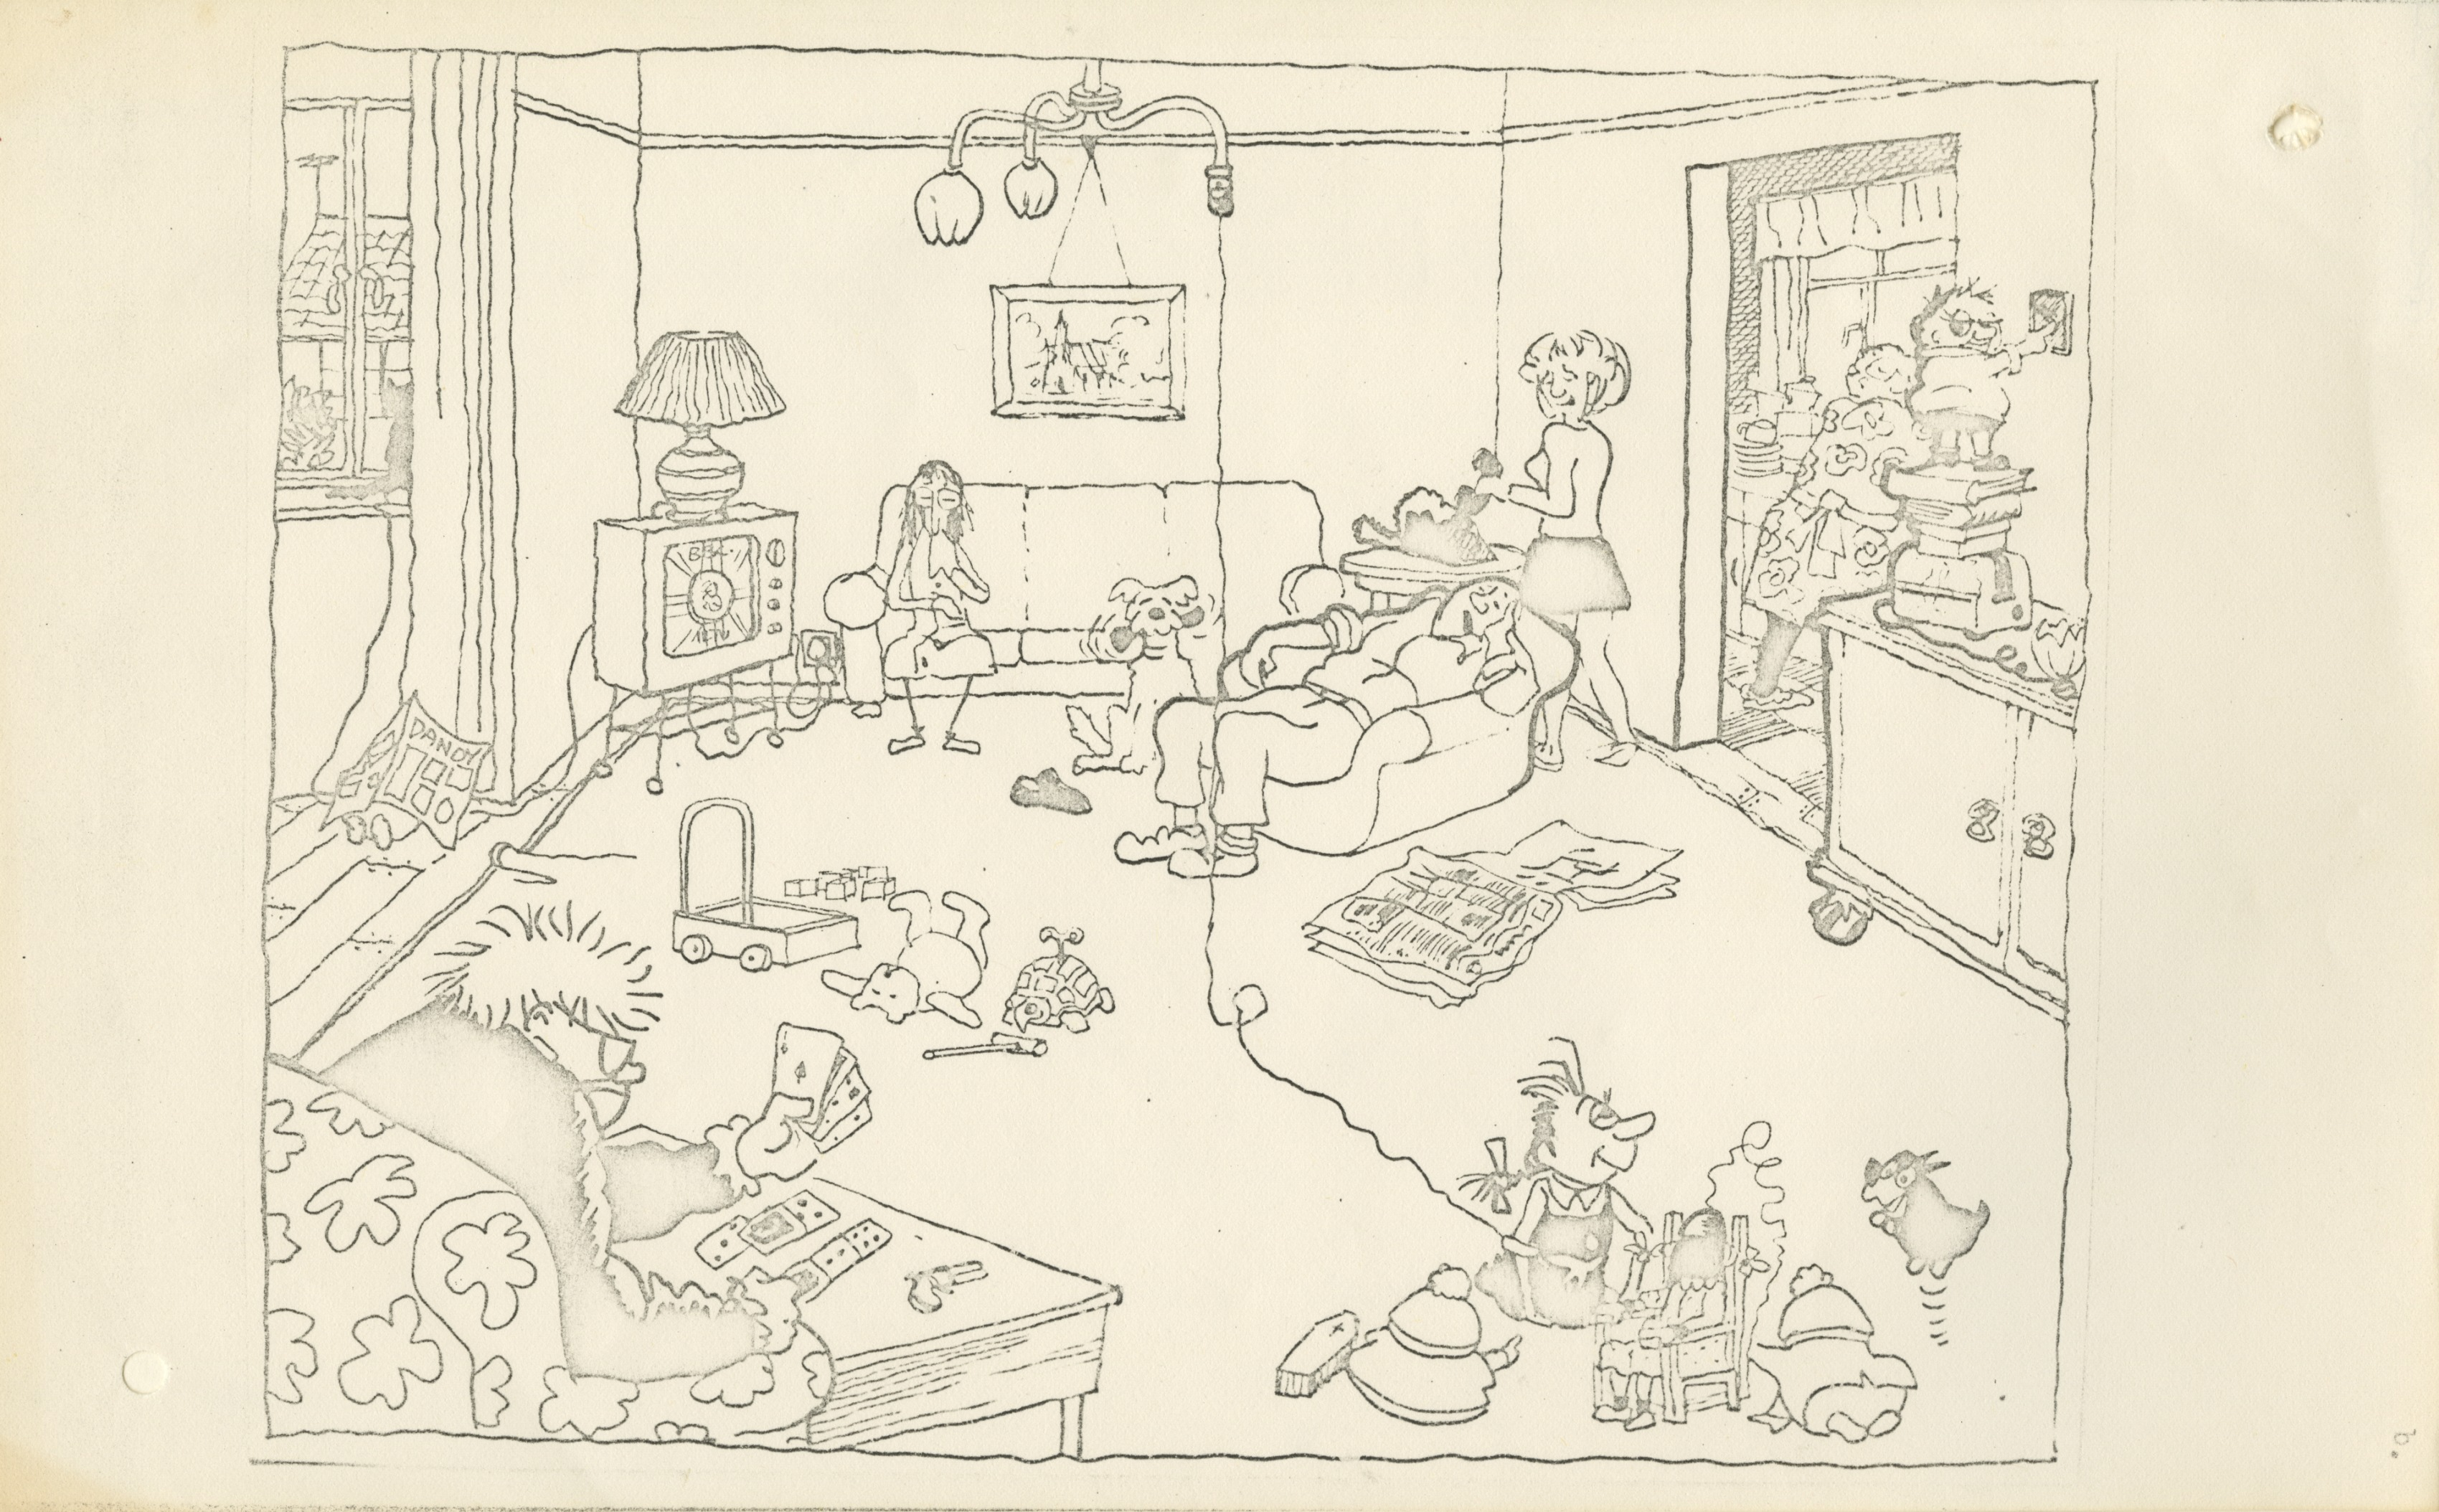 Drawing of opening scene of draft script for an episode of an animated comedy series about the Giles Family - James McClure, undated (Image ref: GACS00775C)